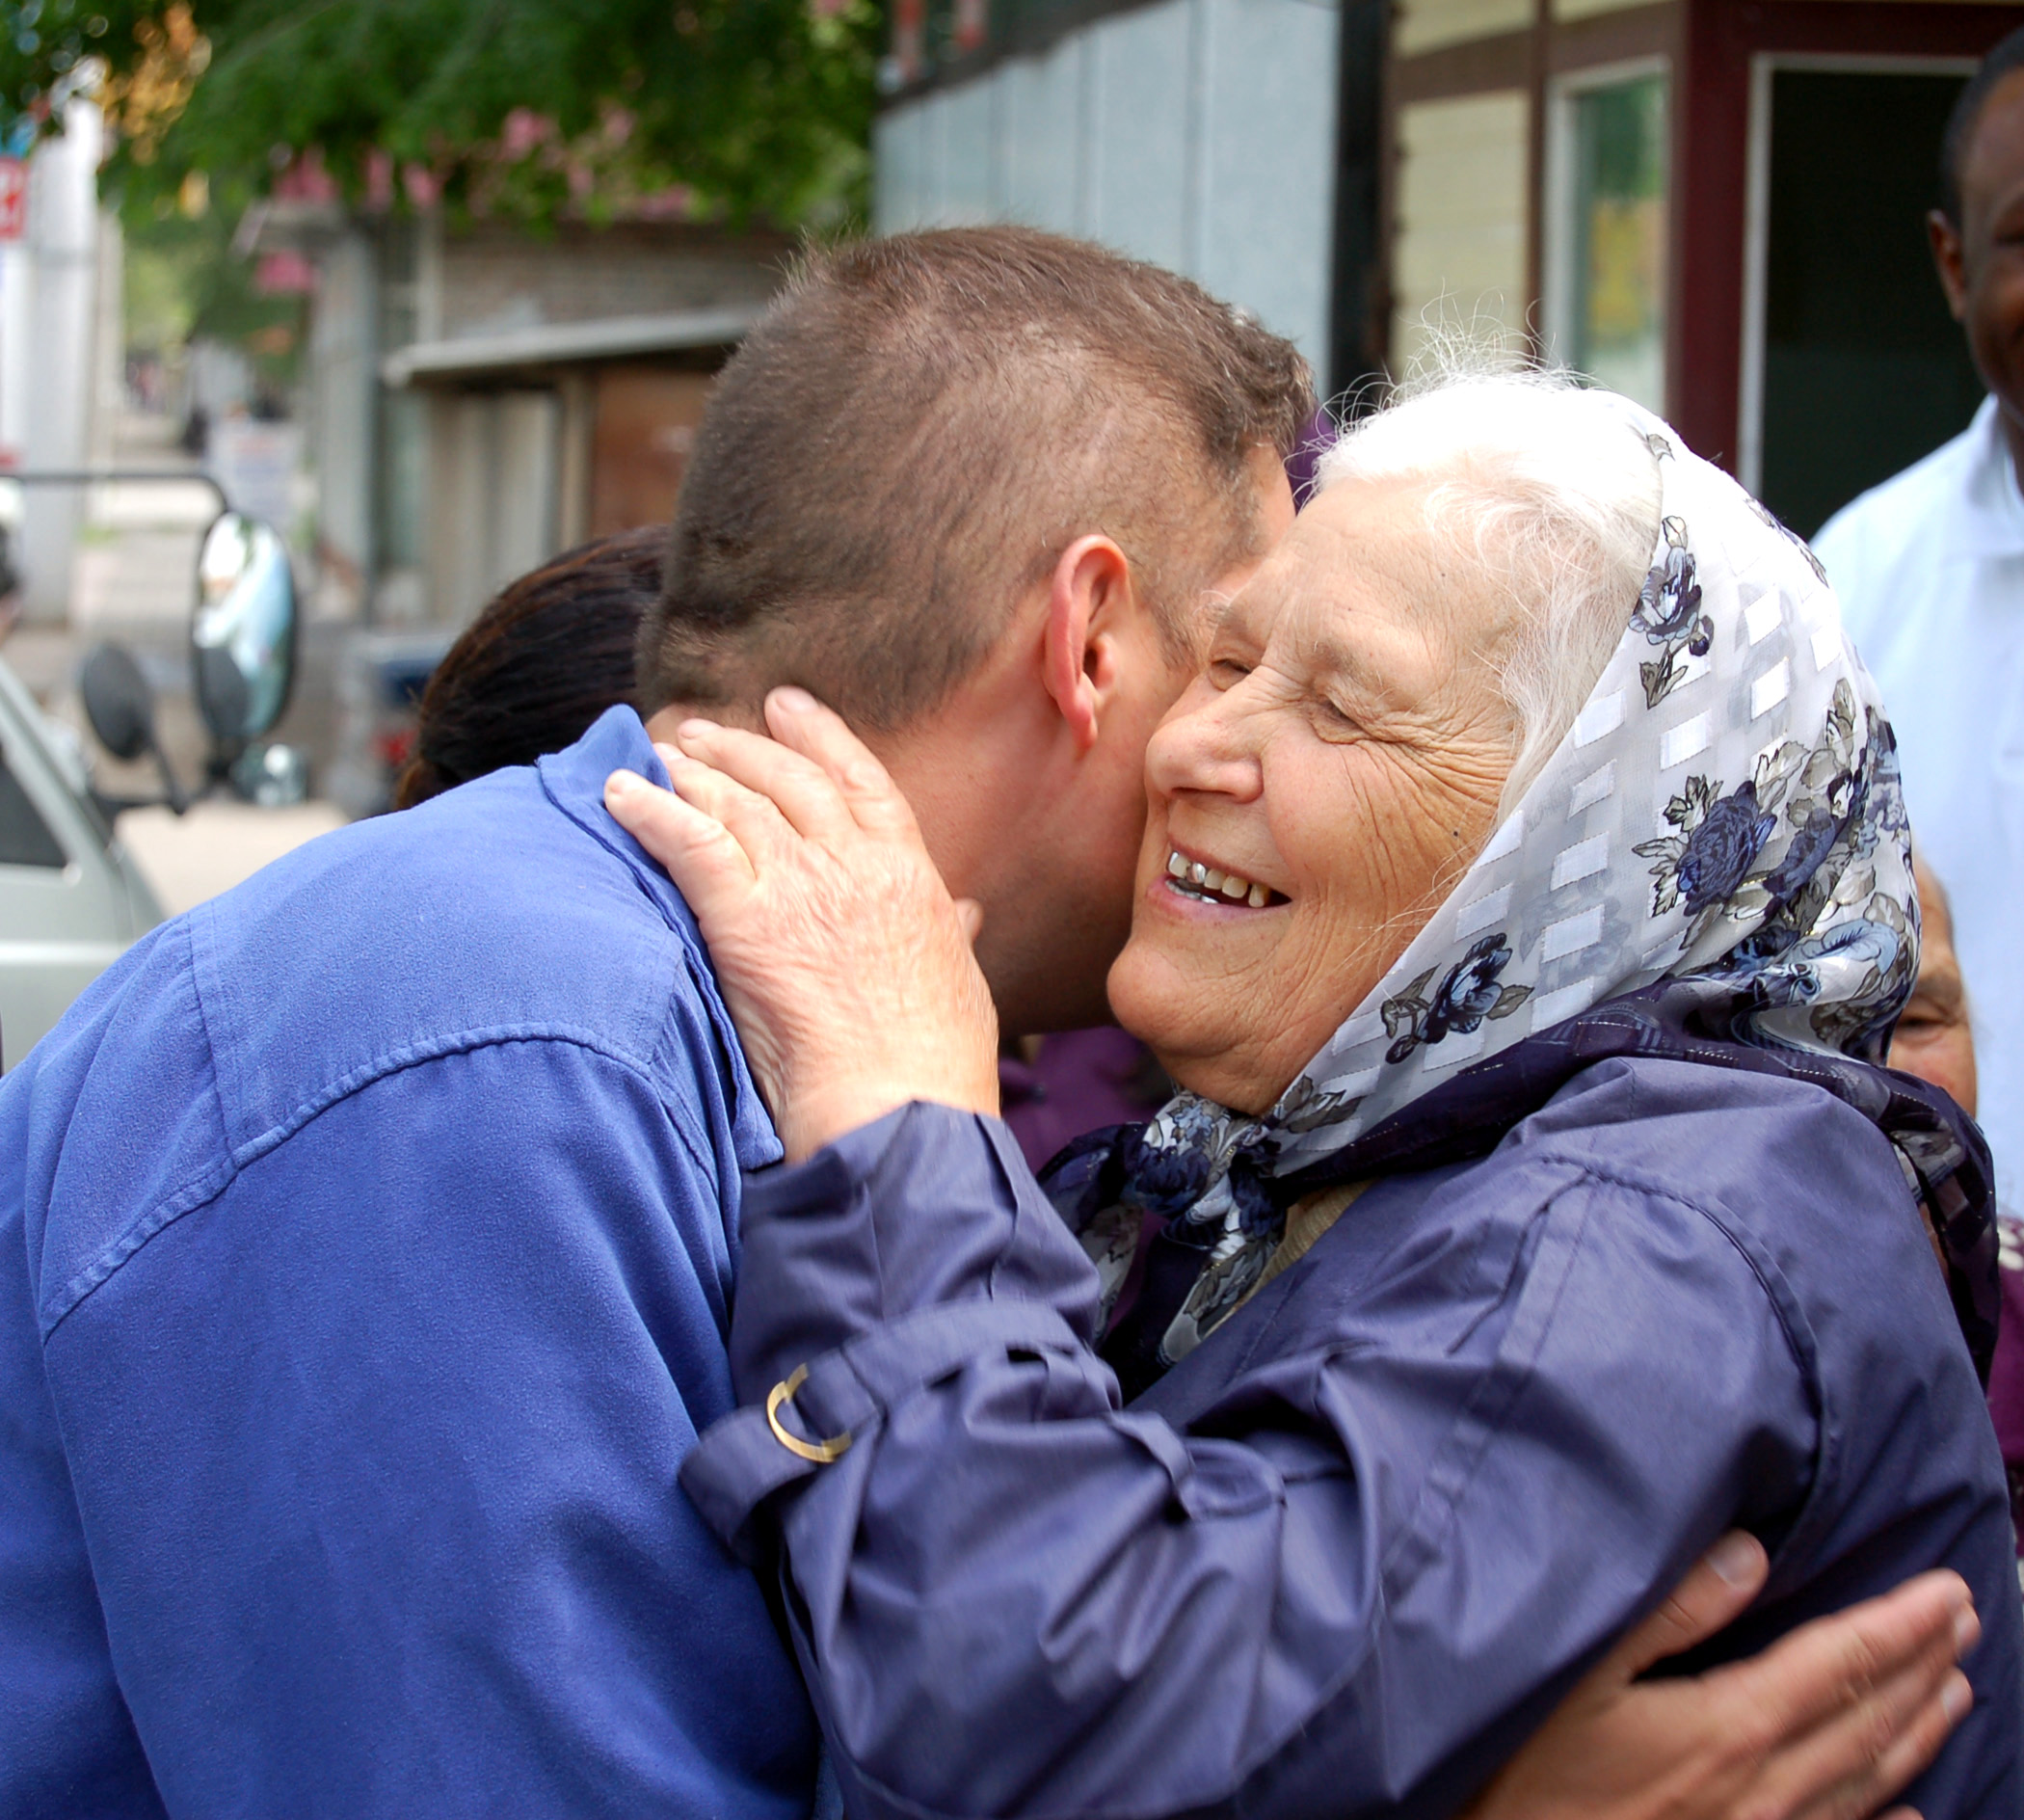 Thumbnail image for man hugging elderly.jpg